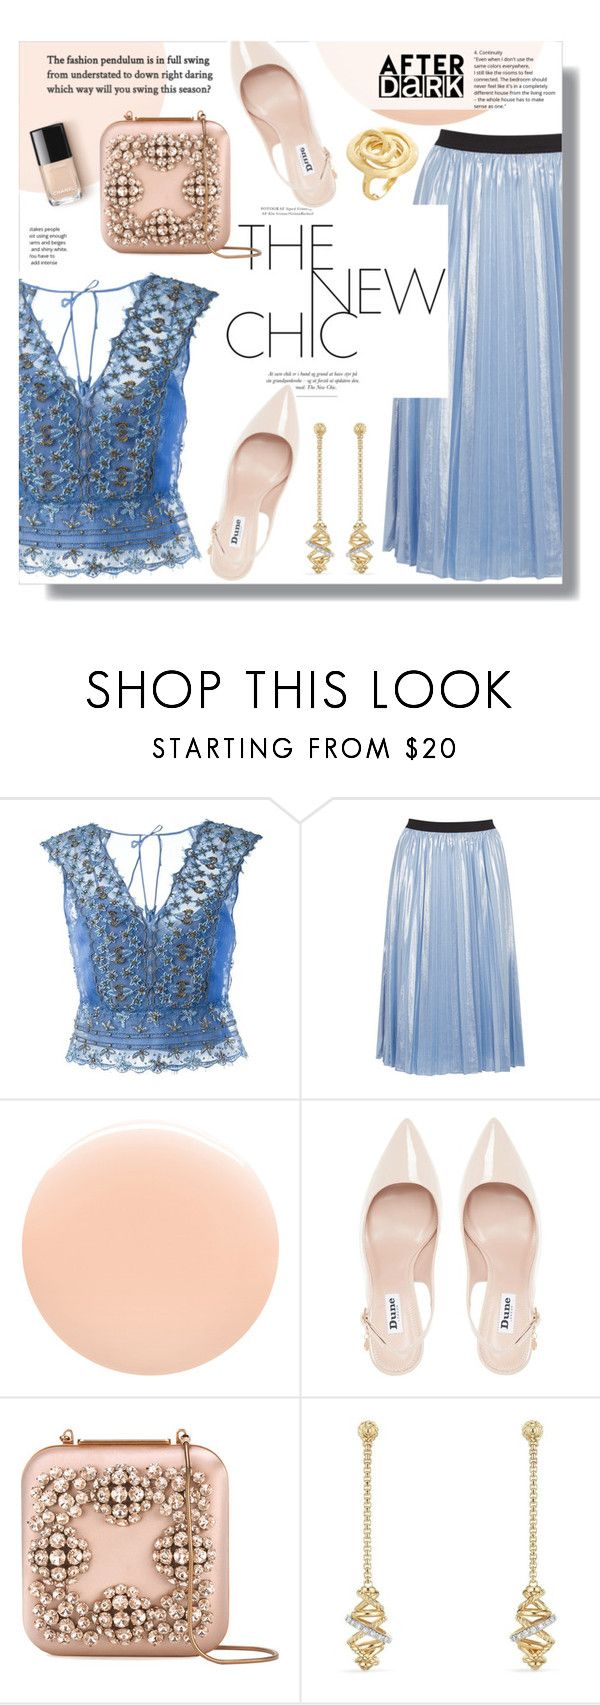 """After Dark: Party Outfits"" by sans-moderation ❤ liked on Polyvore featuring Alberta Ferretti, Pinko, JINsoon, Dune, Manolo Blahnik, David Yurman and Marco Bicego"